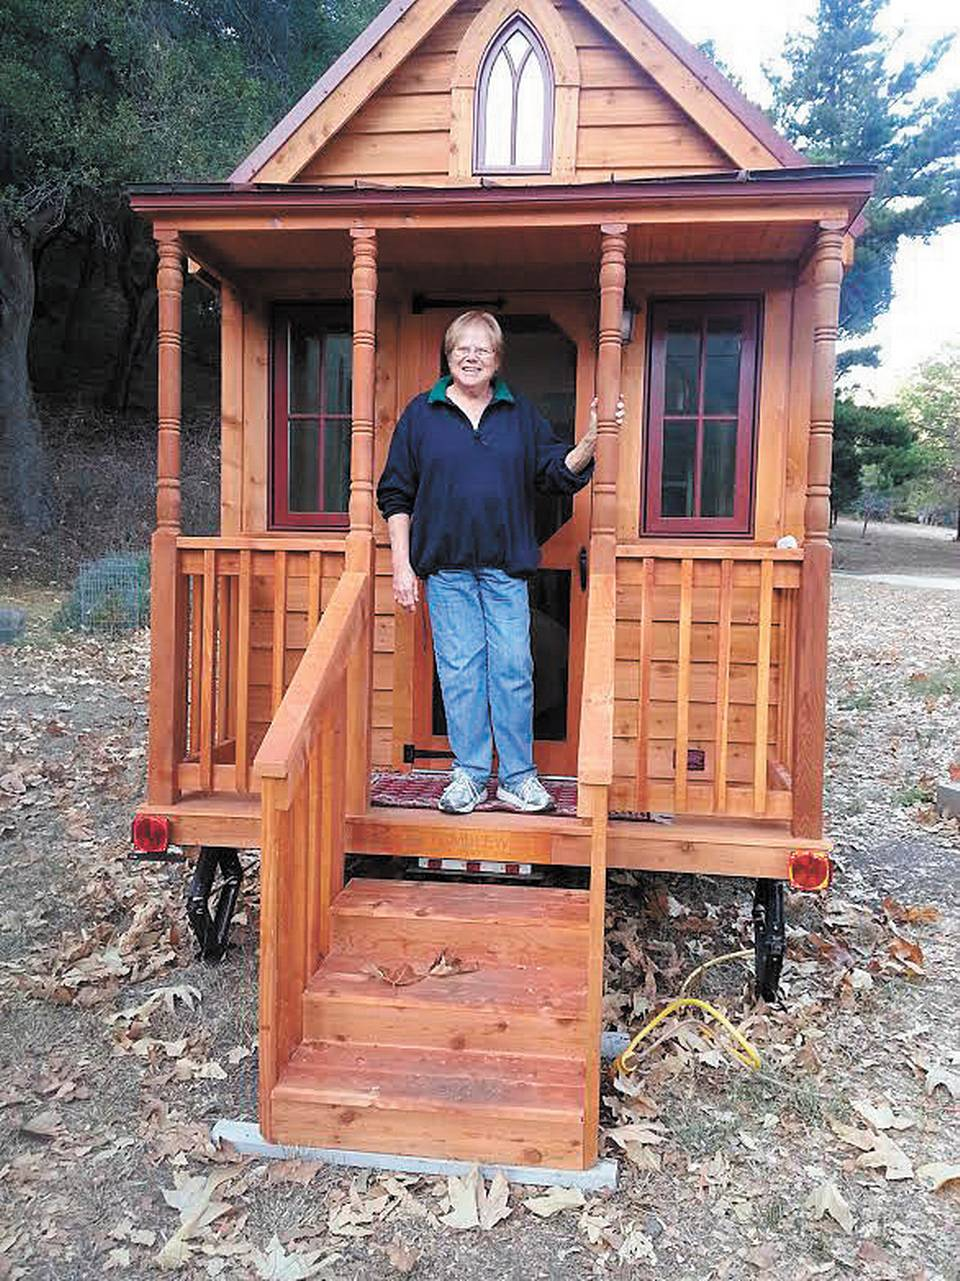 Senior Citizens and Tiny Houses